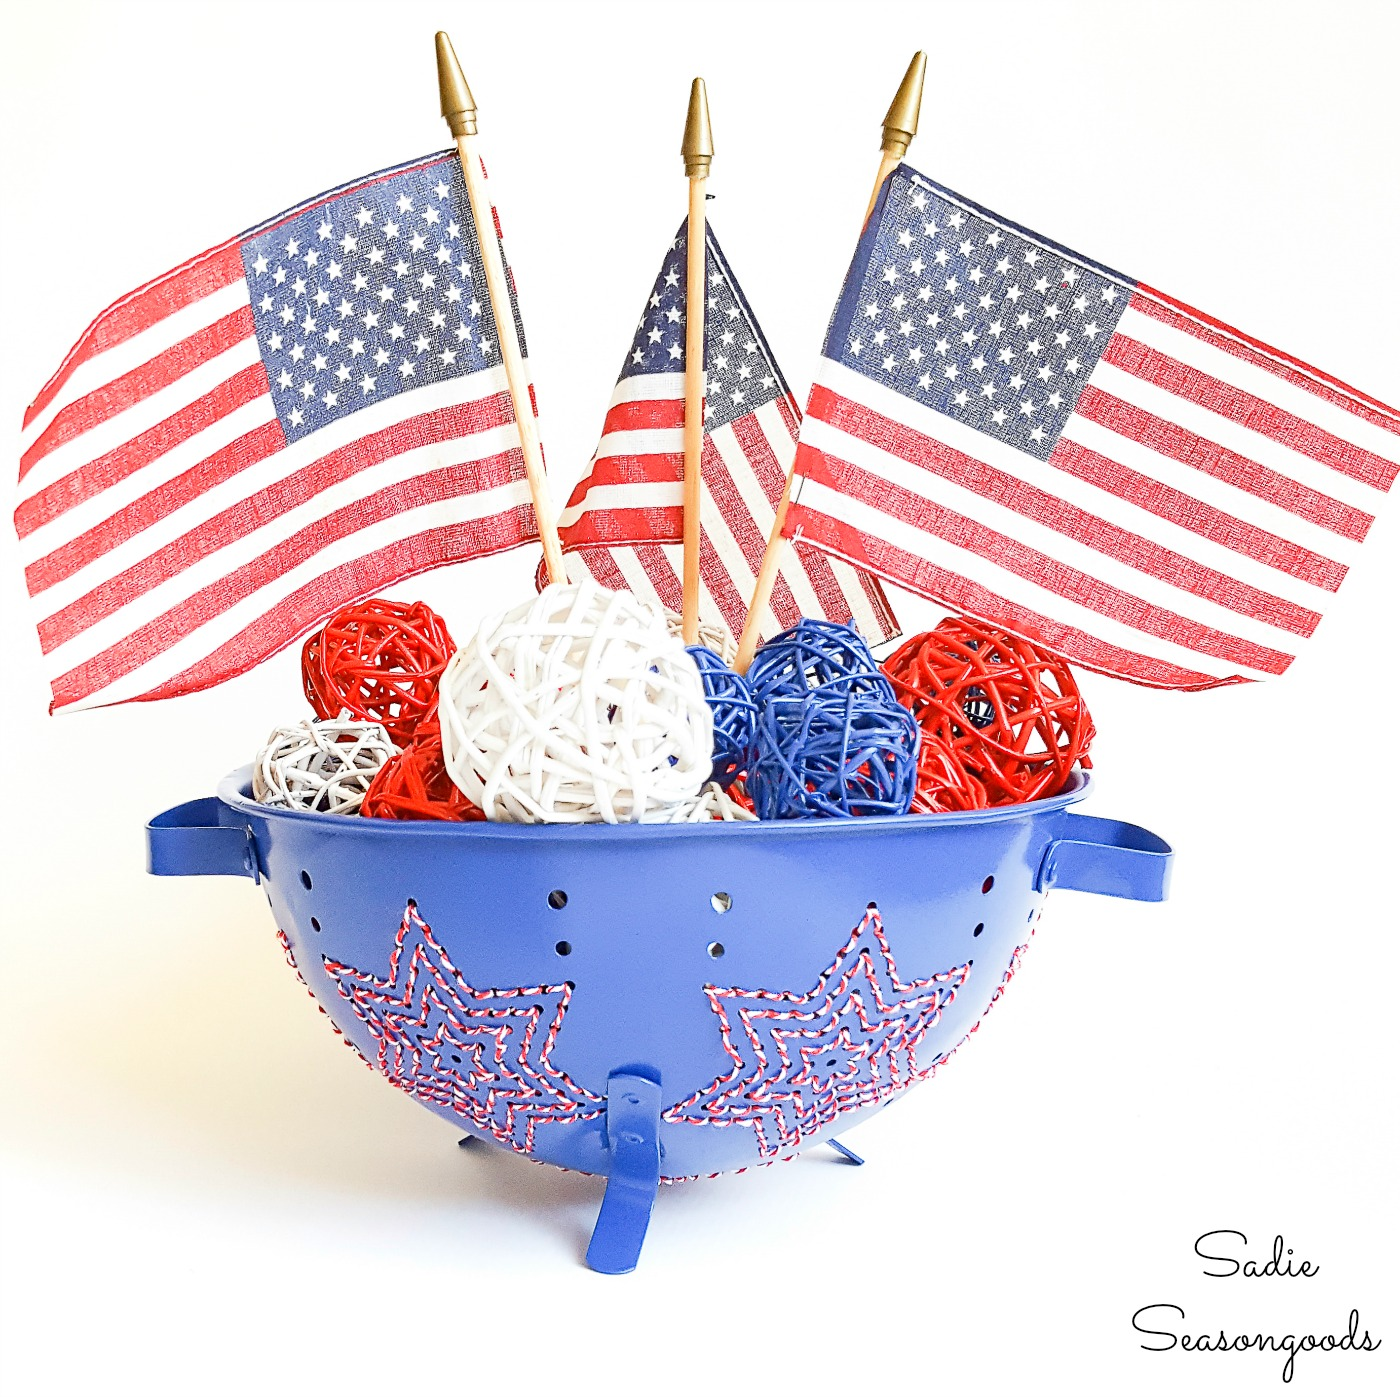 Star Embroidery on a Vintage Colander as a Patriotic Centerpiece